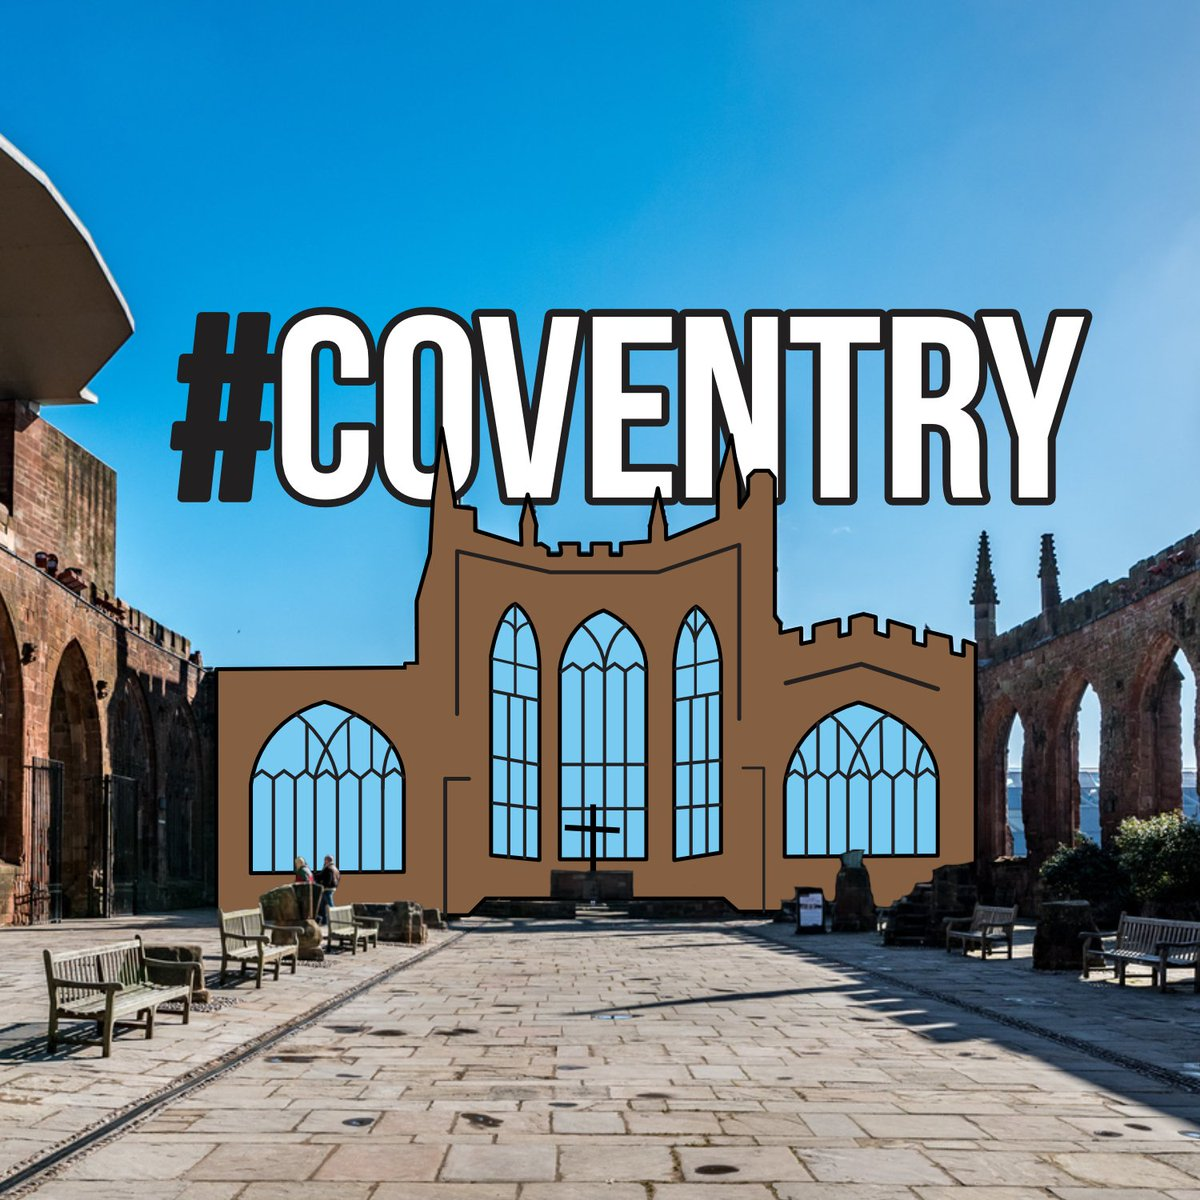 Places To Visit Coventry Uk: Welcome To Coventry Cathedral